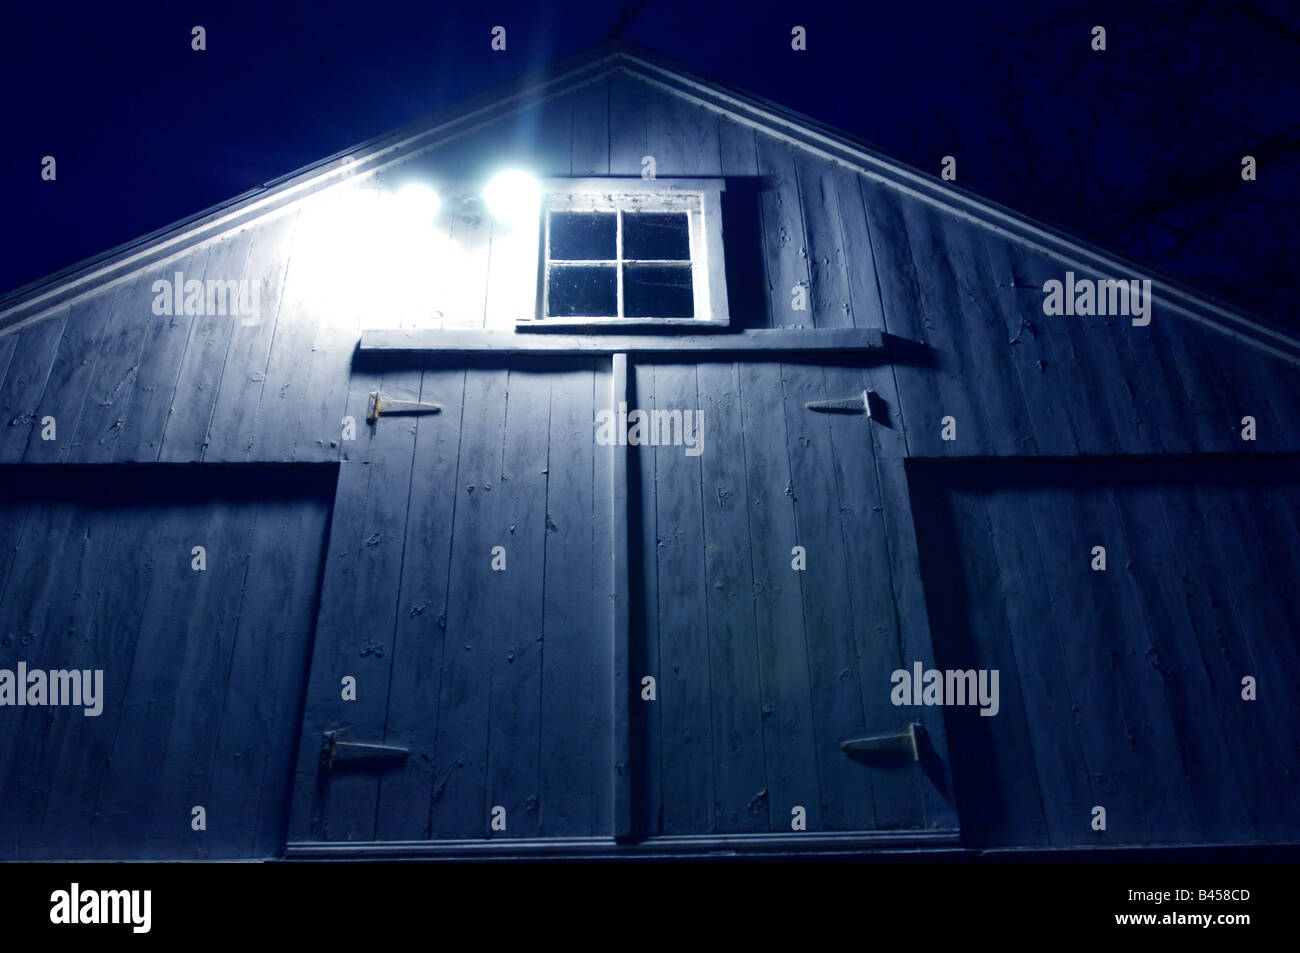 Barn at night, Westport, Ct. USA. - Stock Image